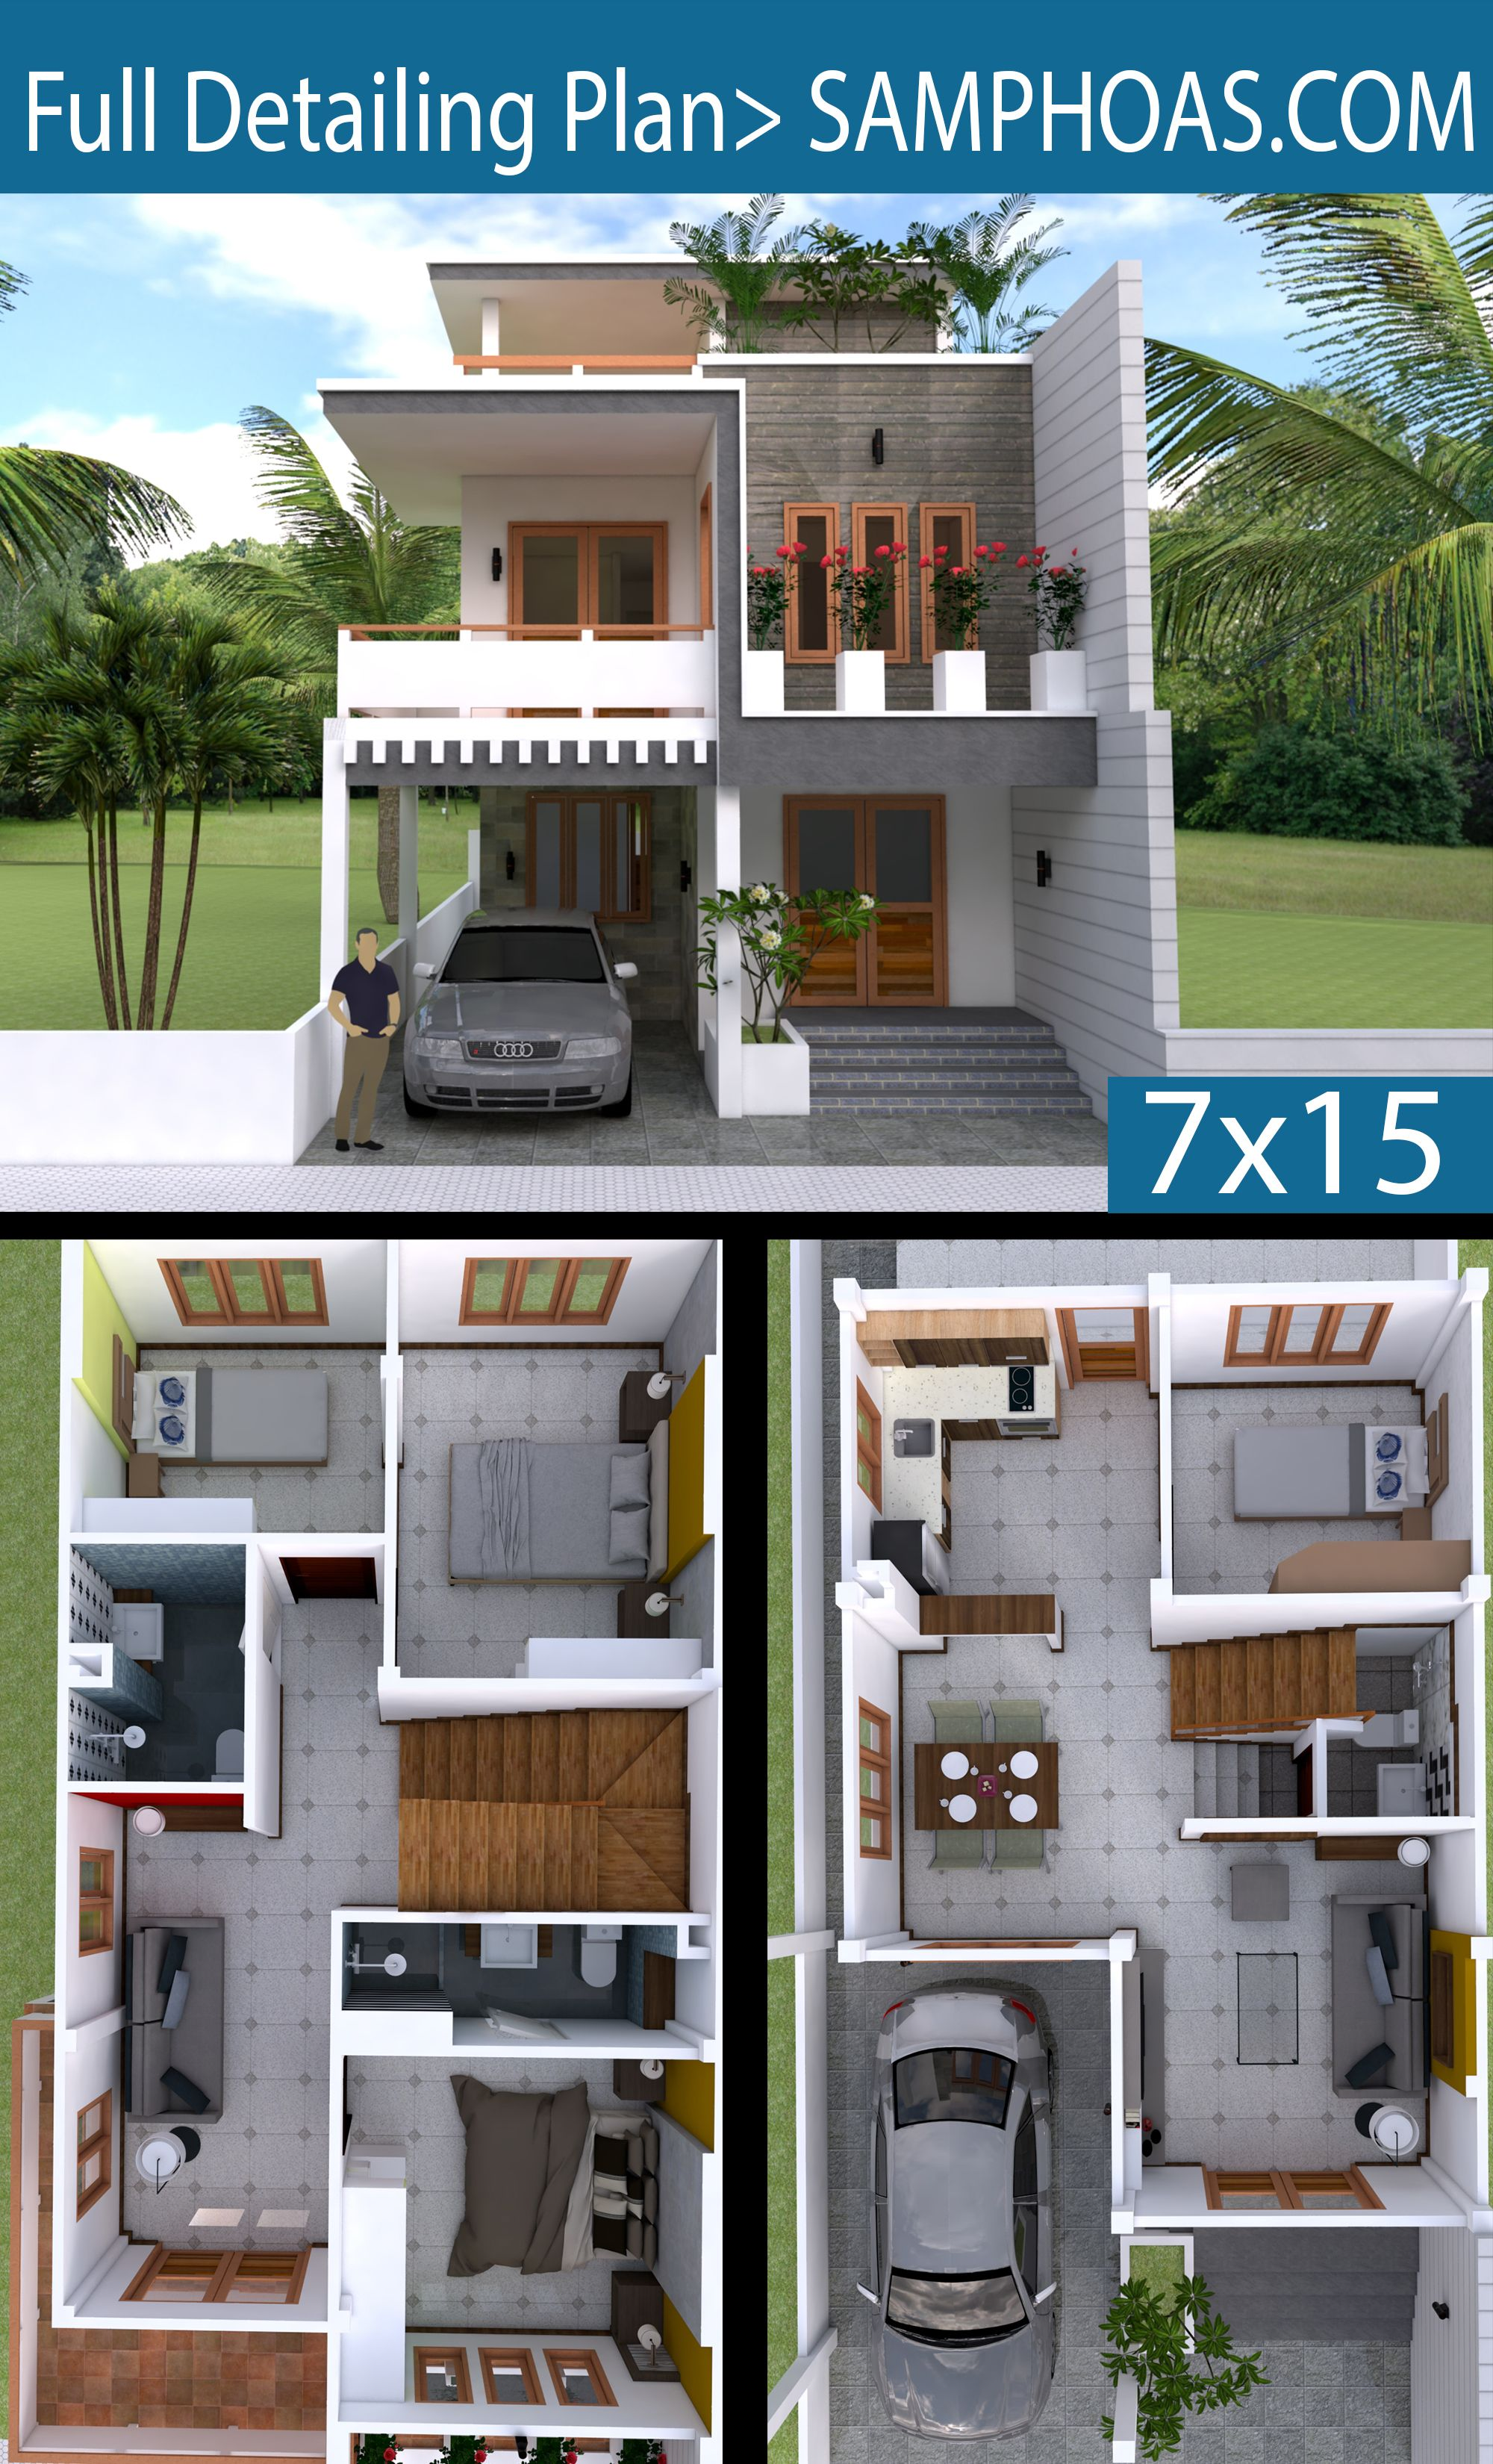 Interior Design Plan 7x15m Walk Through With Full Plan 4beds